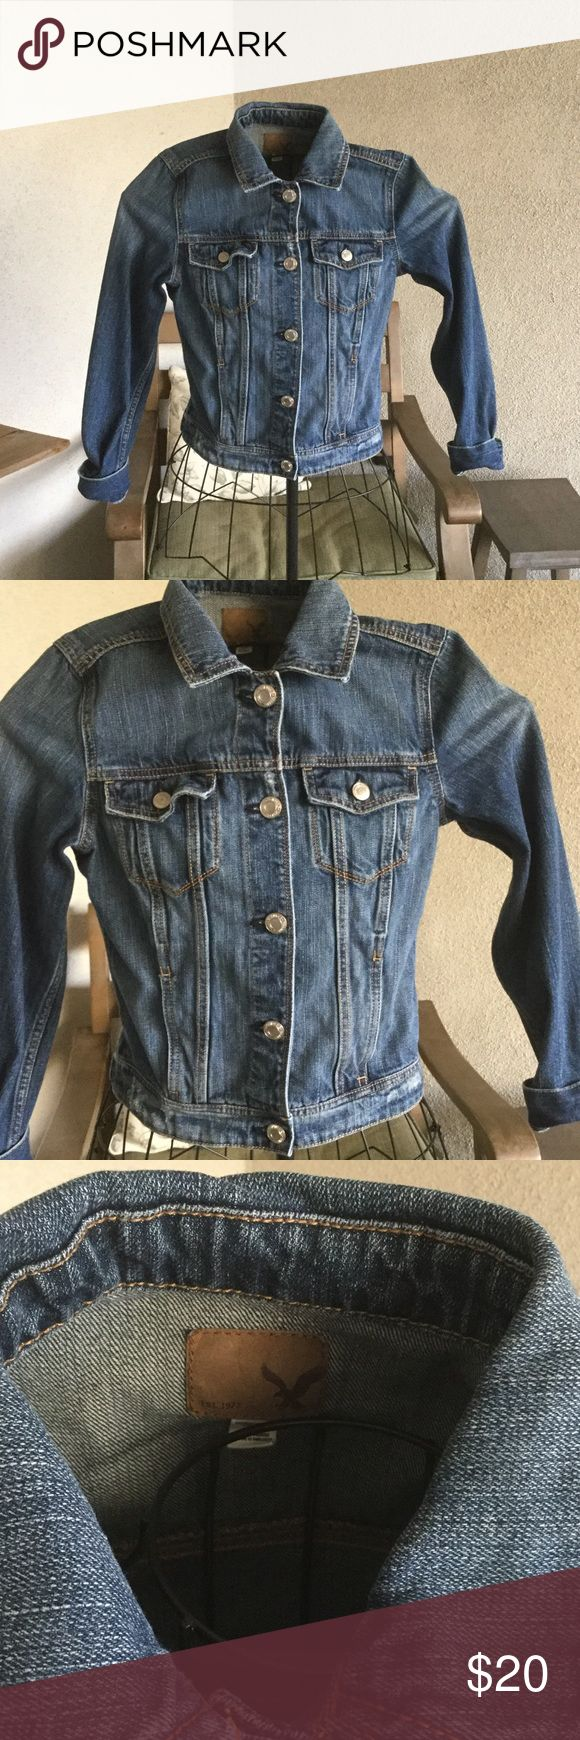 American eagle jean jacket Full length button down jean jacket never worn. Feel free to offer. American Eagle Outfitters Jackets & Coats Jean Jackets